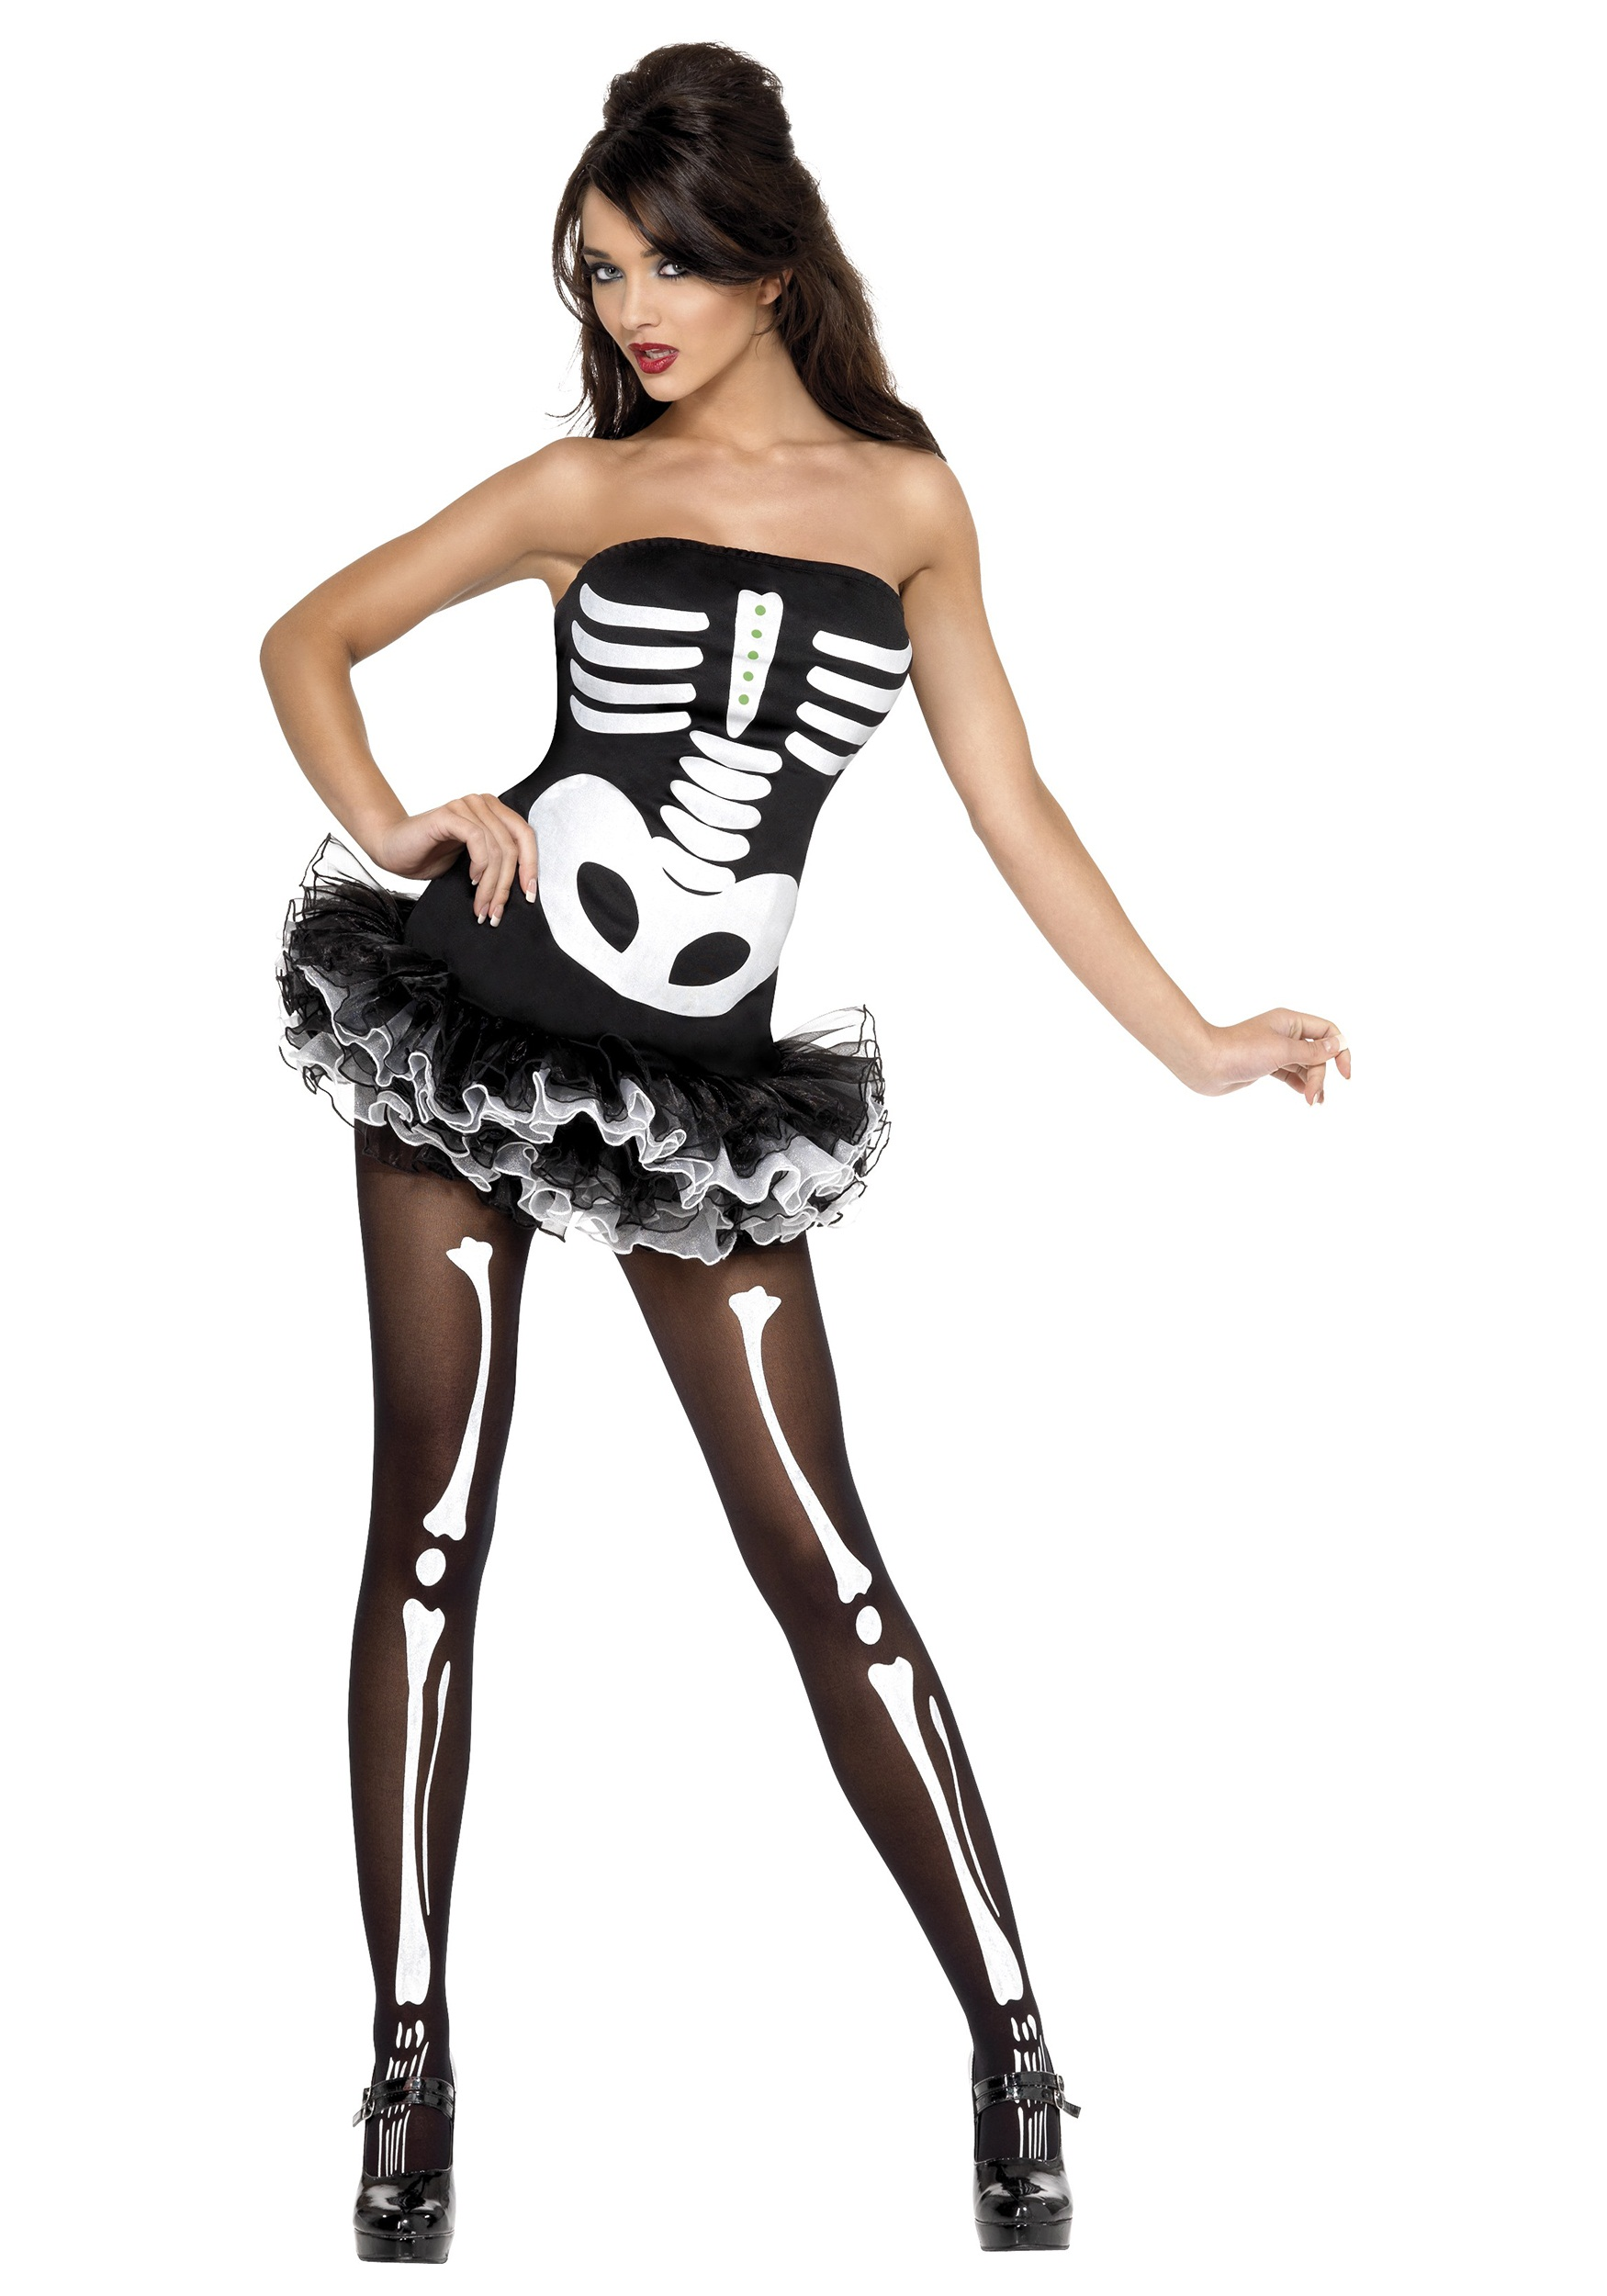 Skeleton cowboy costume - photo#12